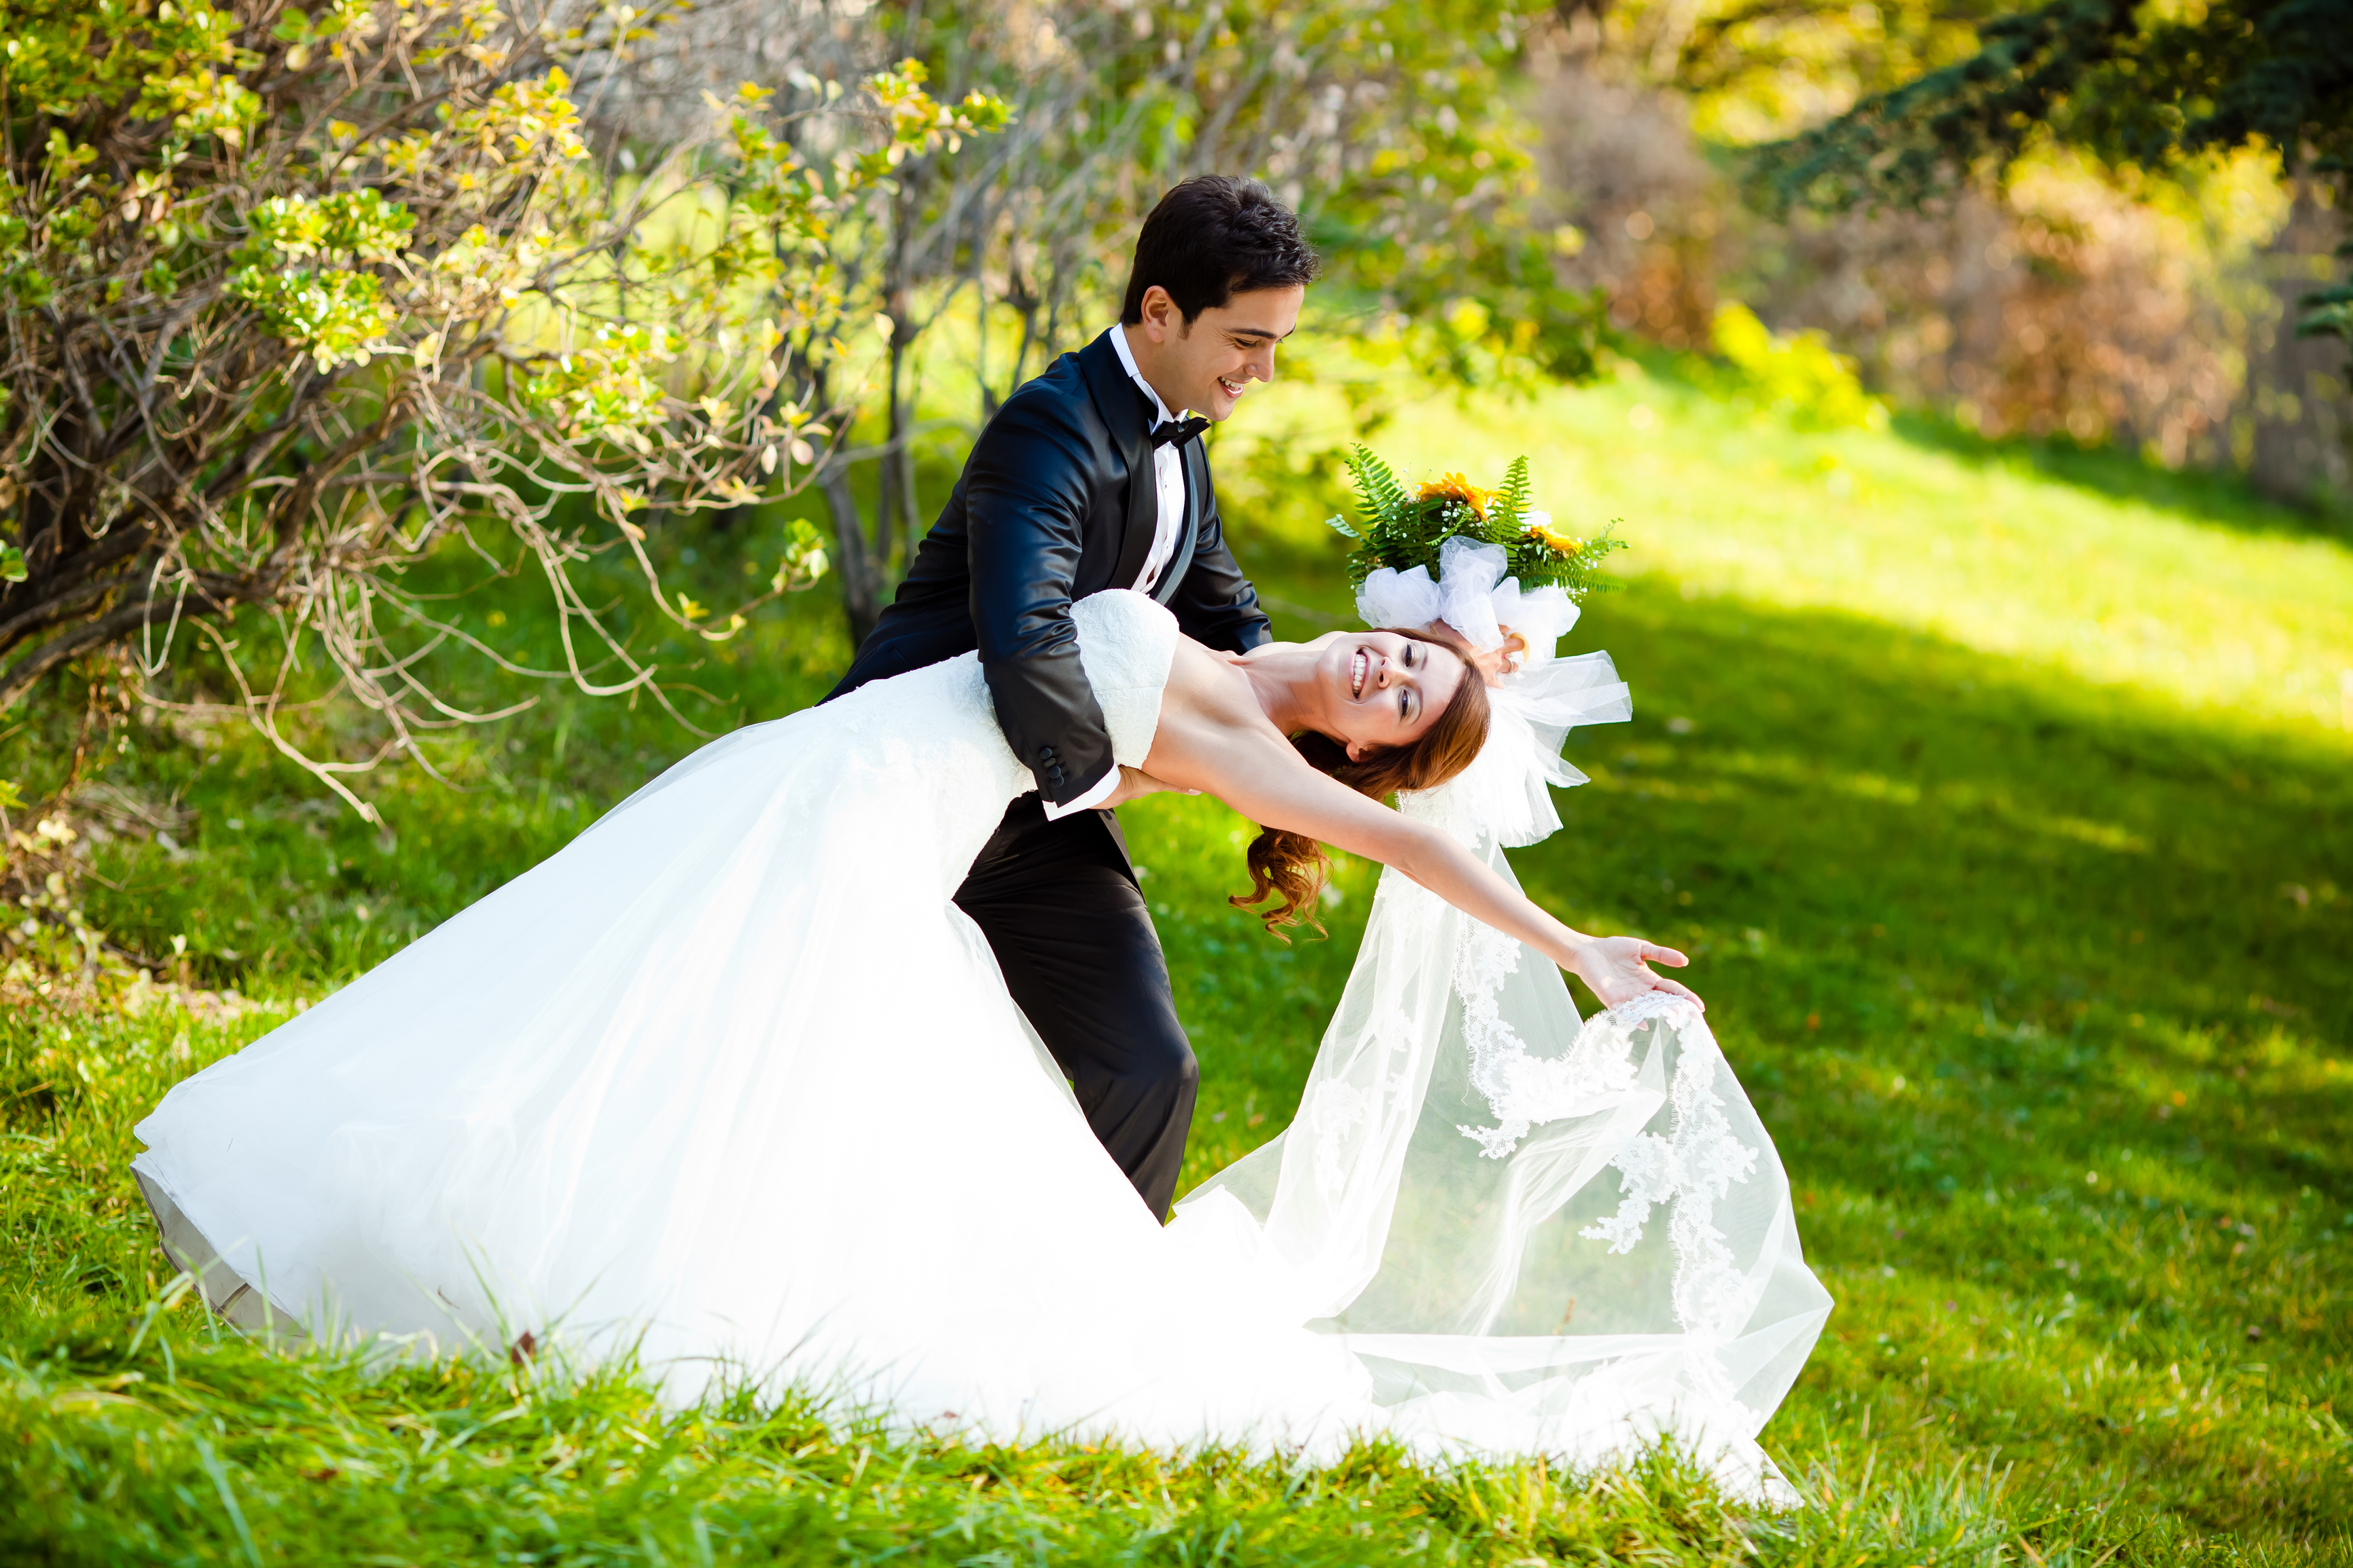 Who Pays For a Wedding Ceremony or Shared Responsibilities as Per Traditional Scenario